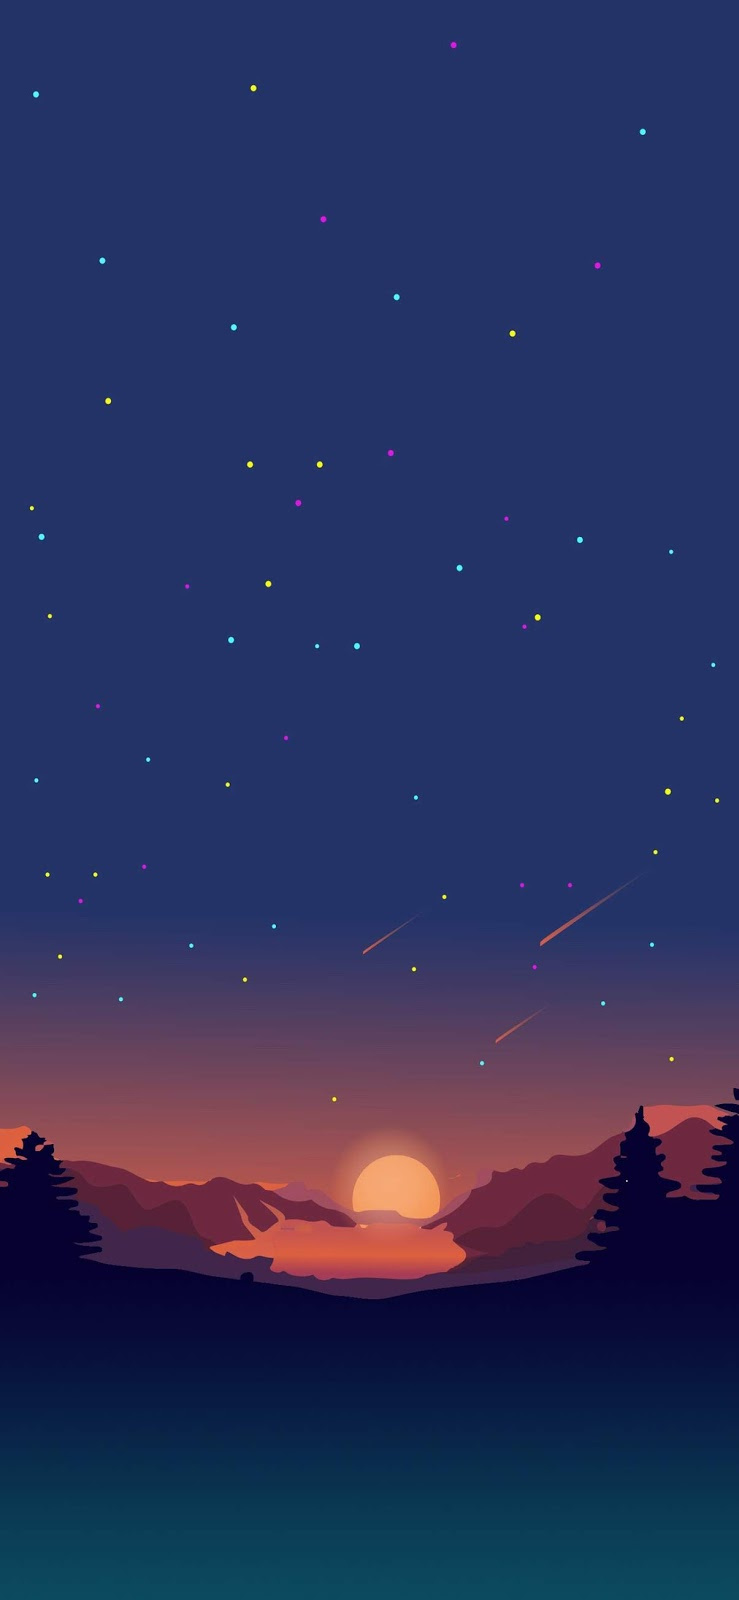 Sunset Digital art Mobile wallpaper